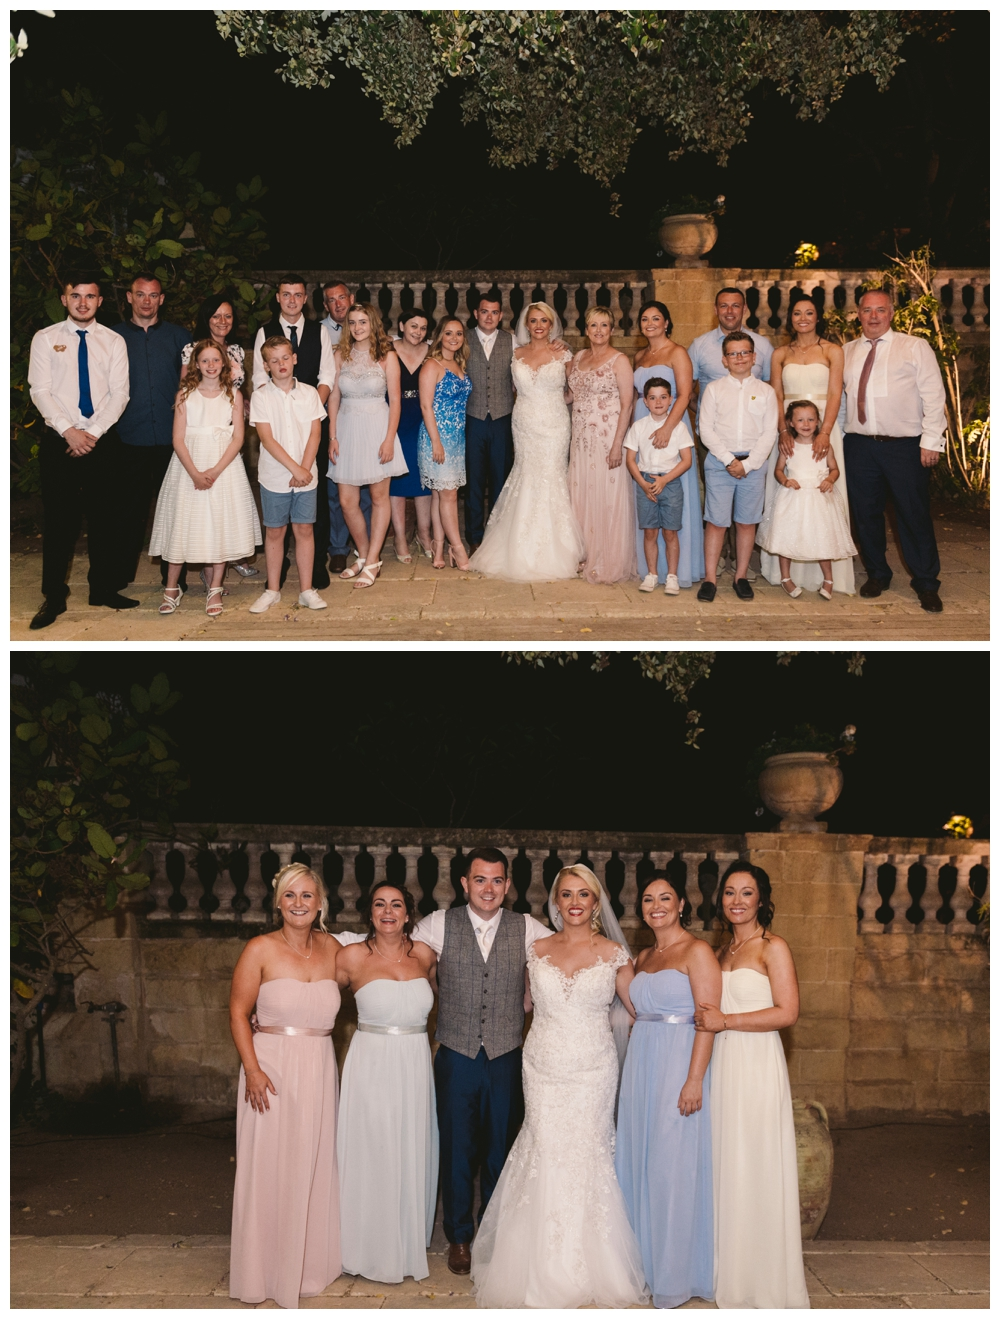 wedding_photographer_matla_villa_balogna_0143.jpg